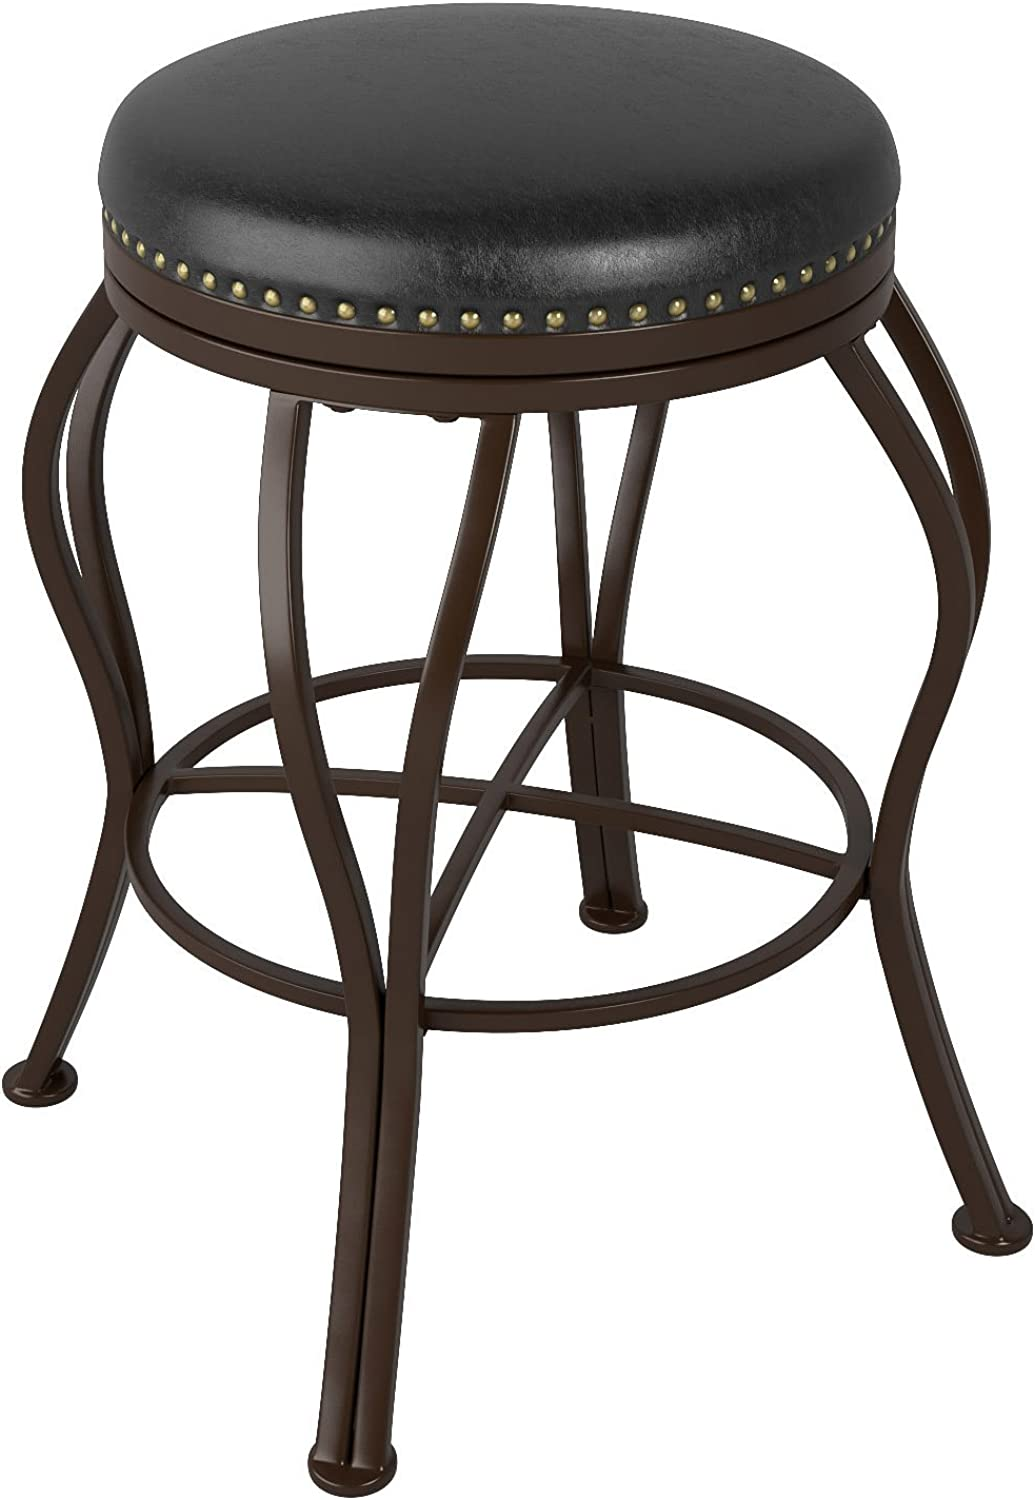 CorLiving DJS-124-B Jericho Metal Counter Height Barstool with Dark Brown Bonded Leather Seat